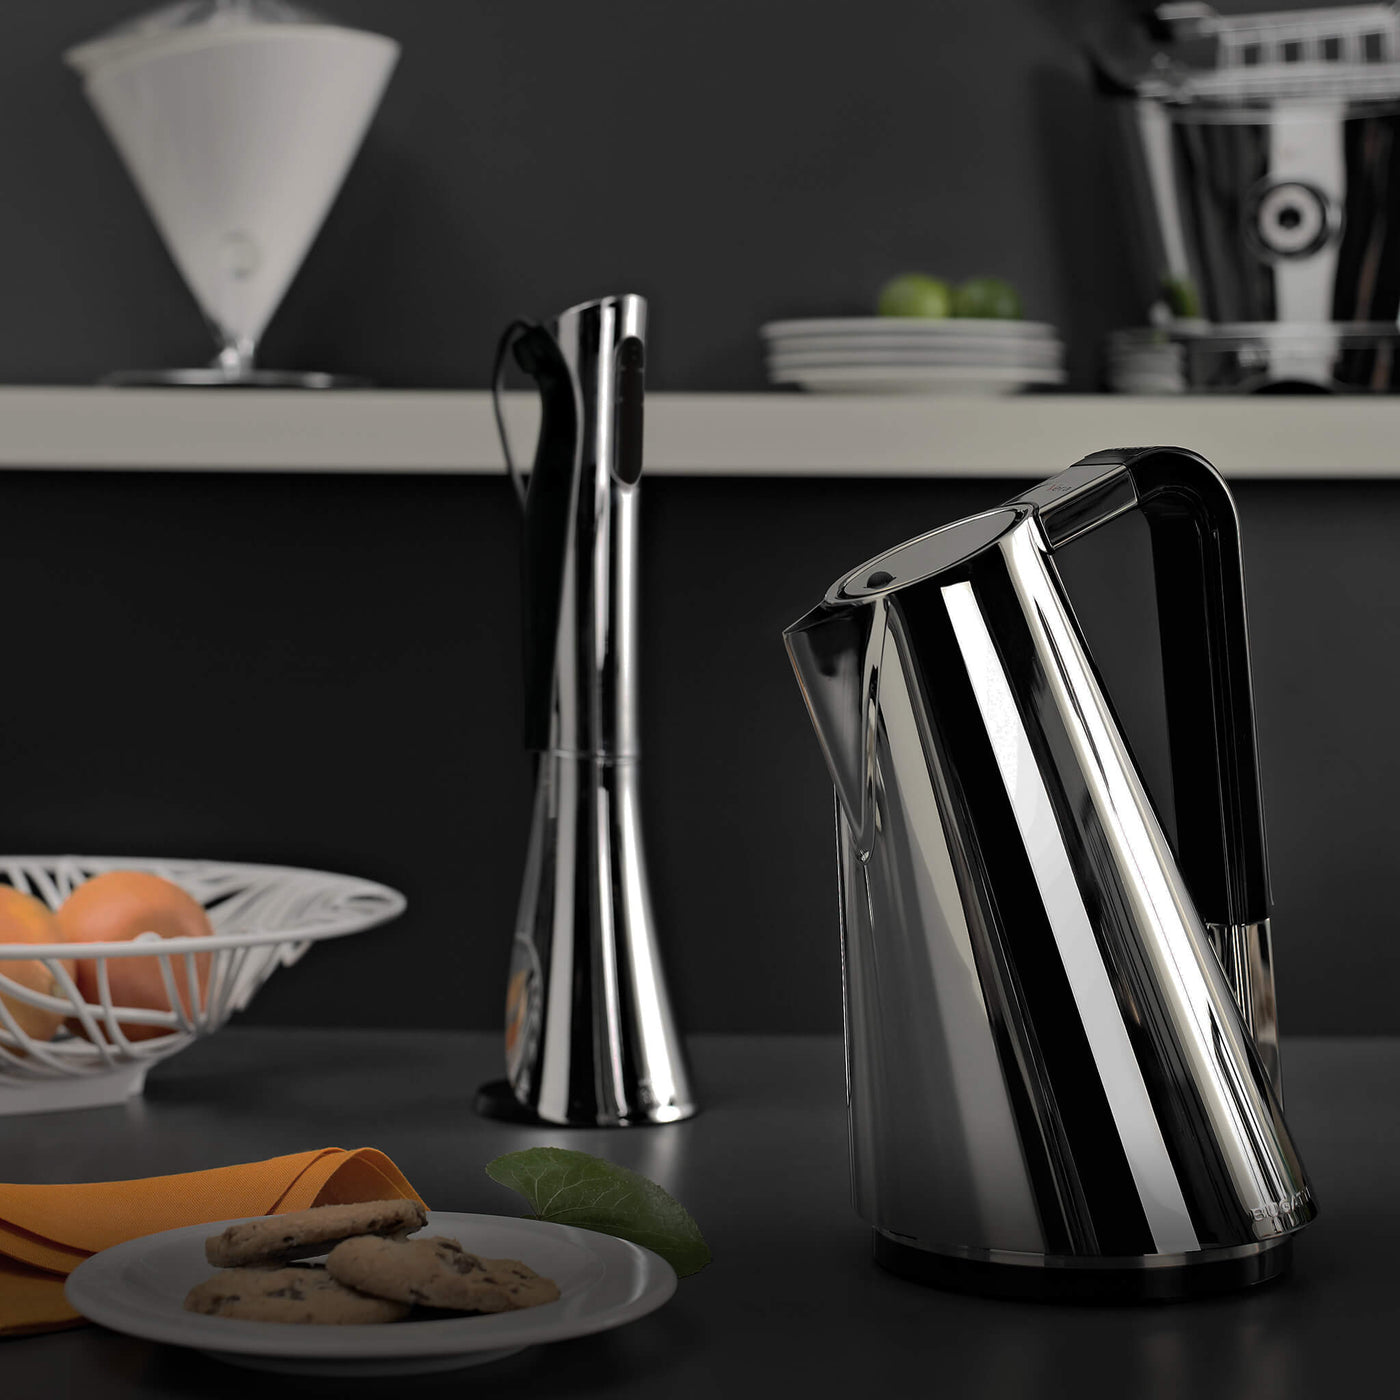 Shop Casa Bugatti Luxury Kitchenware from Burton Blake, the Luxury Lifestyle Shop